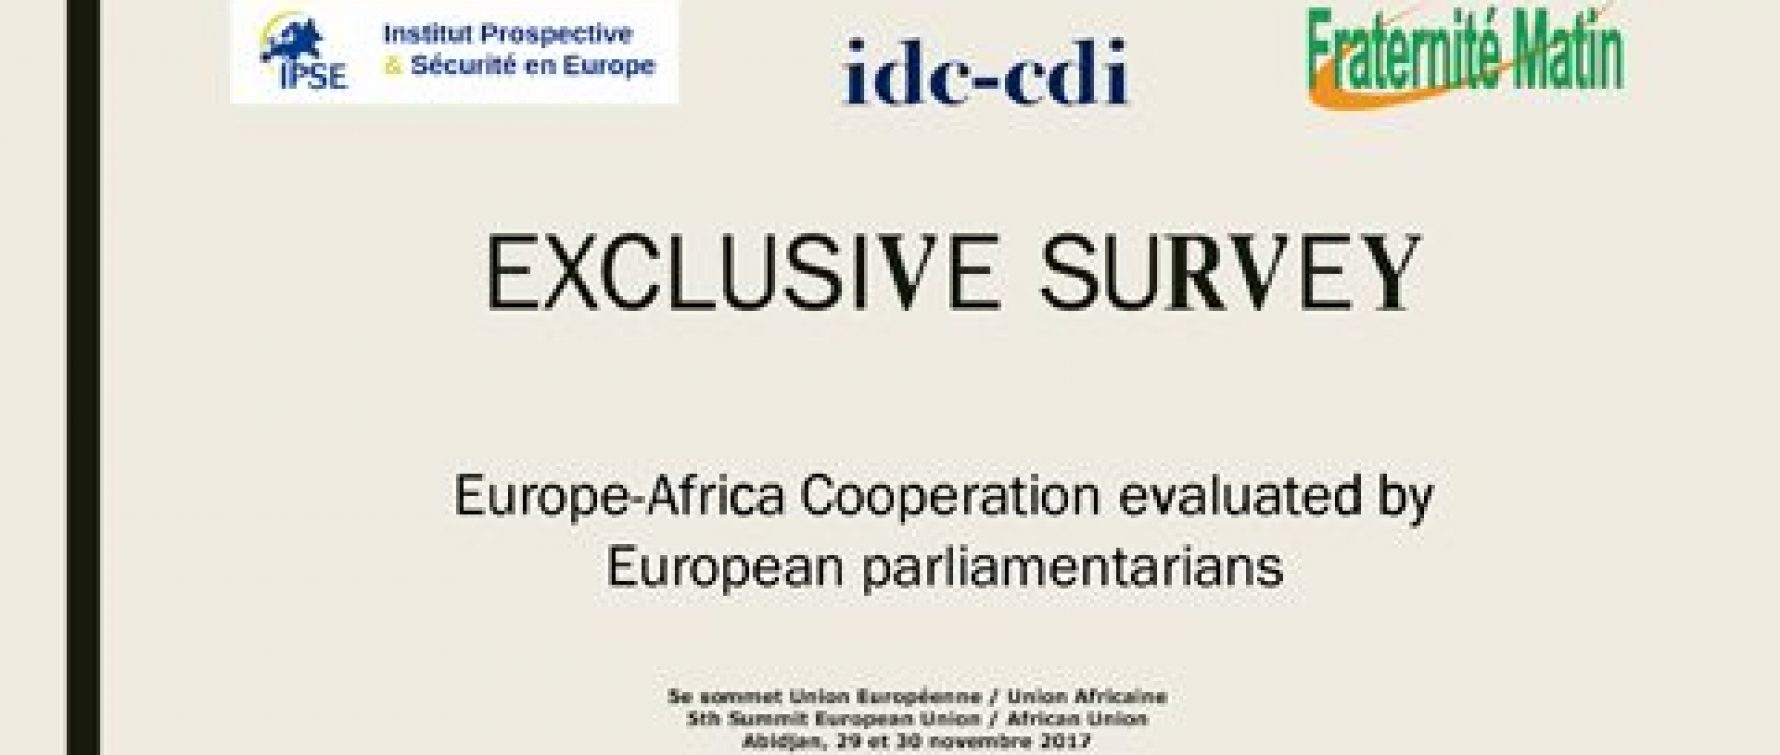 Europe-Africa Cooperation evaluated by European Parliamentarians